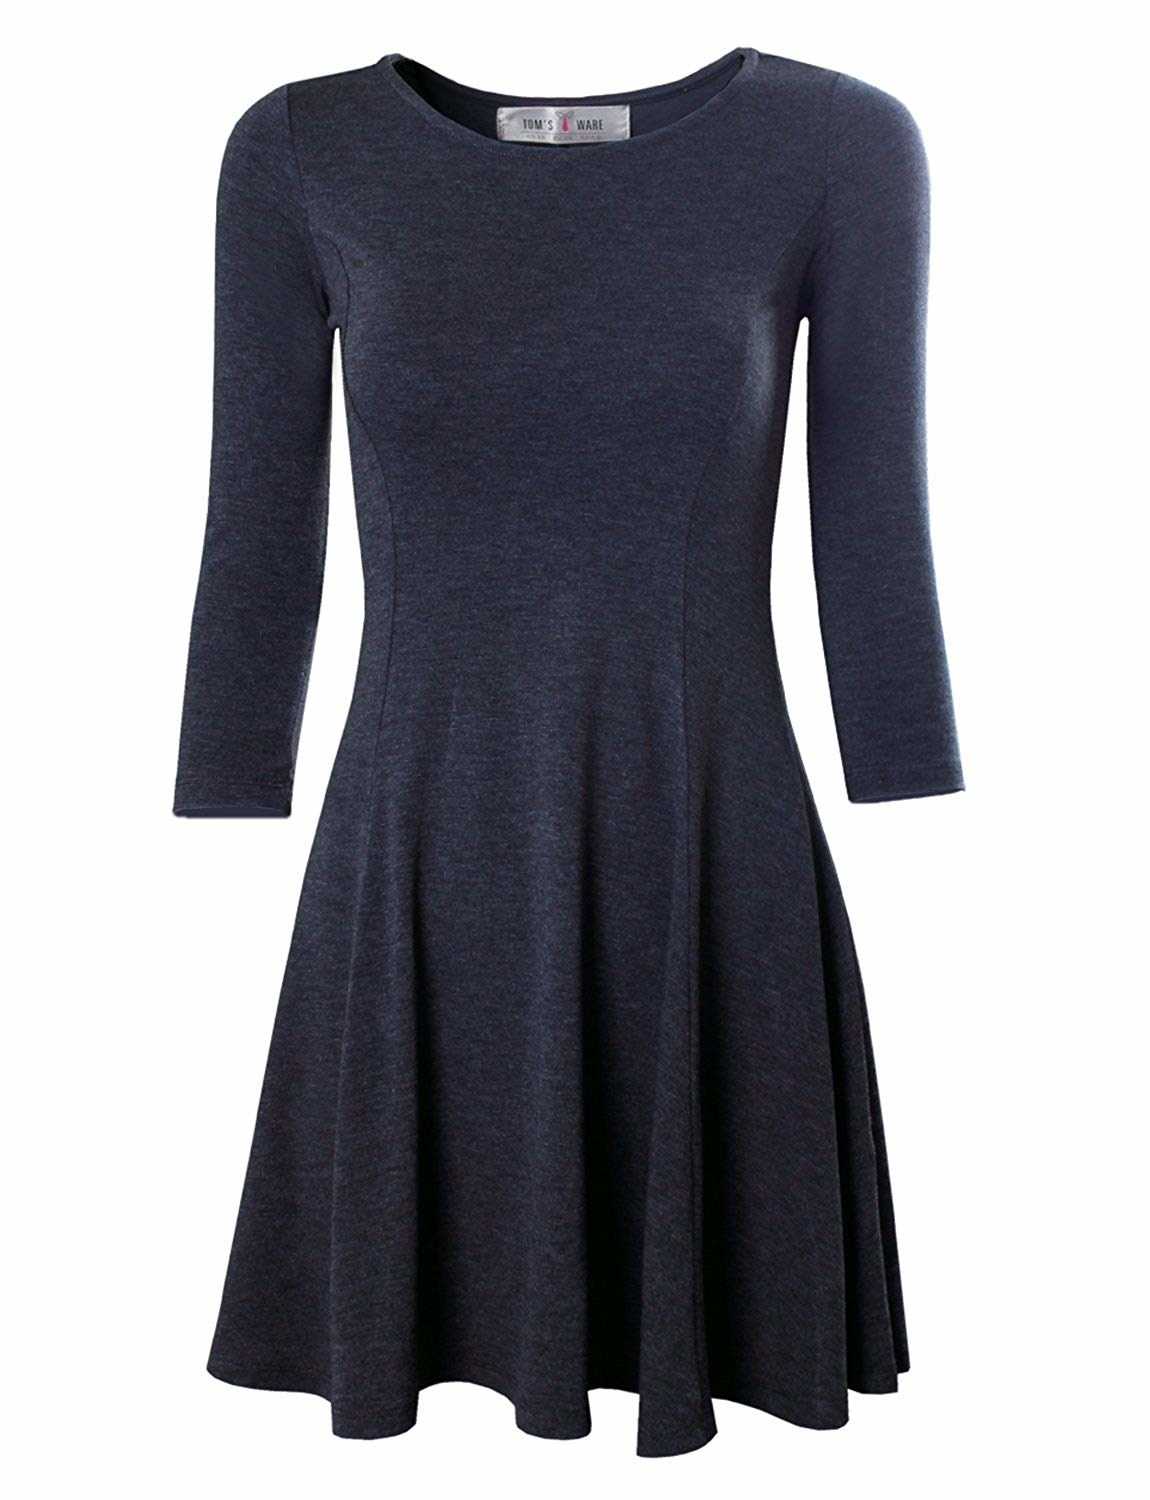 68014c6f12d A stretchy slim fit dress made for first dates and family dinners when you  wanna look great and also wanna fit an entire burrito in your stomach  without ...